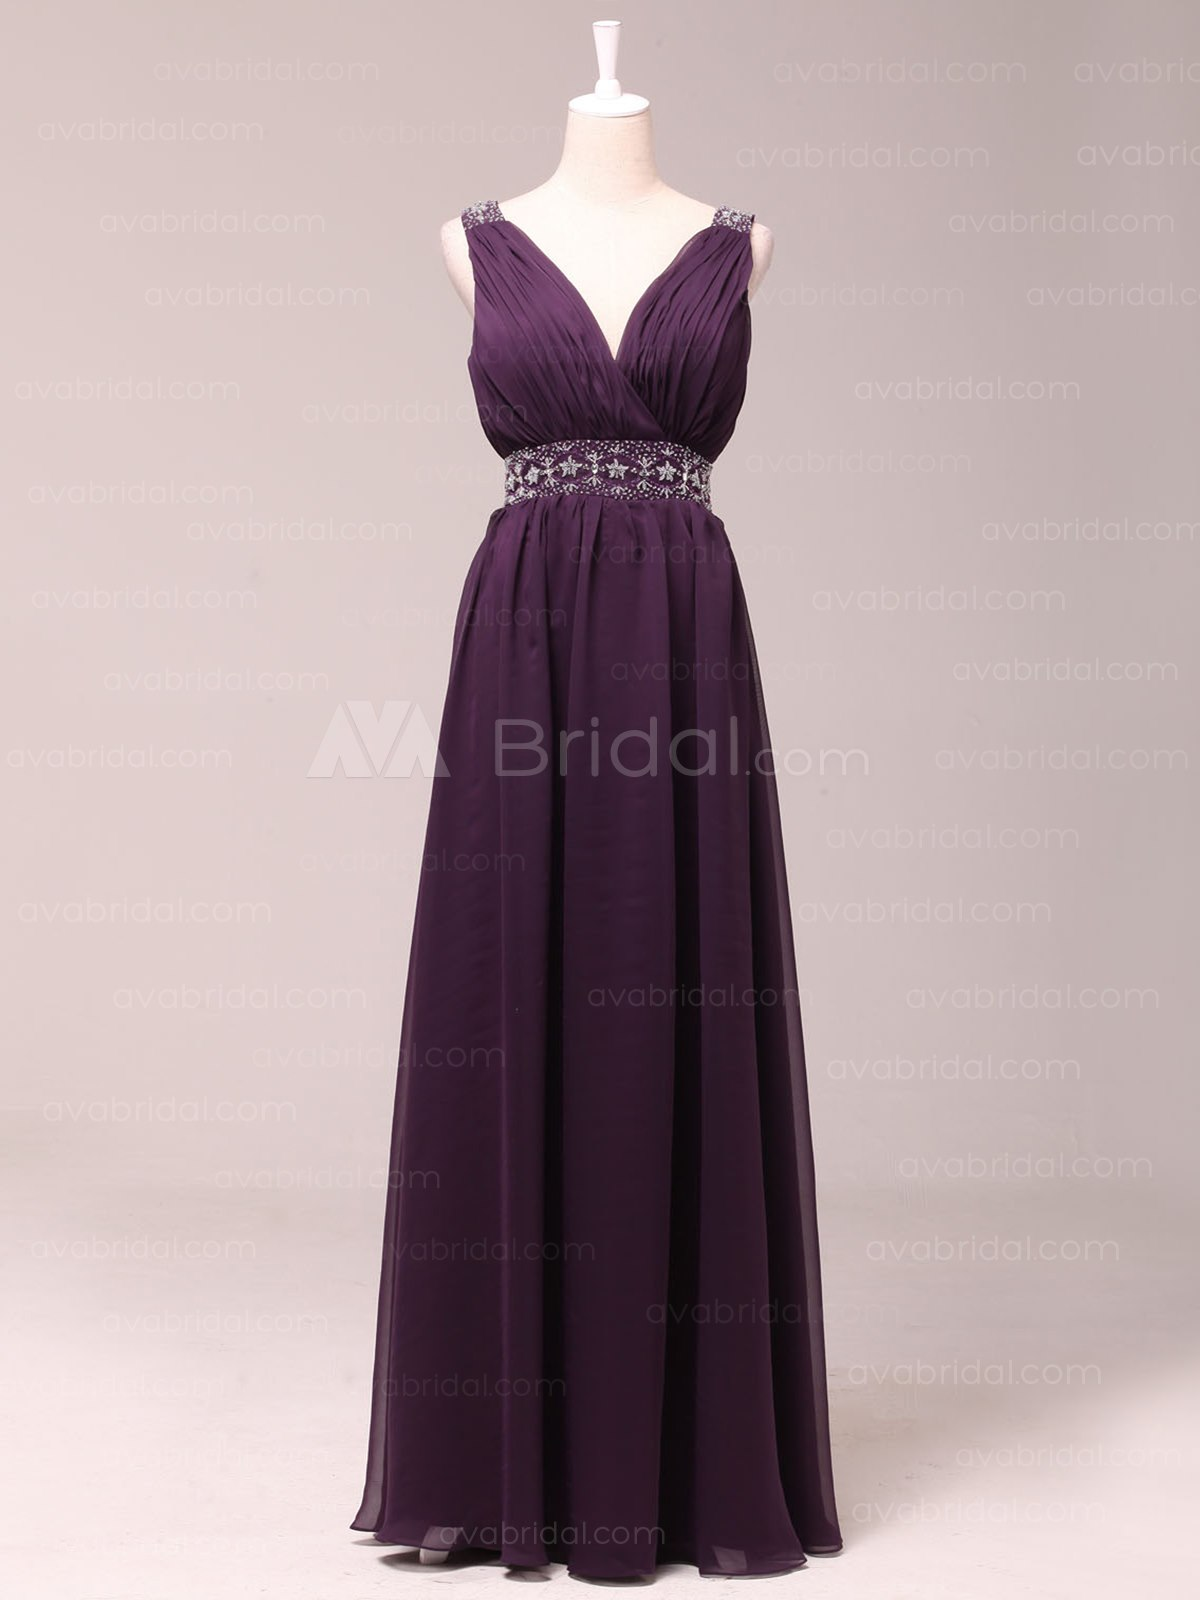 Modern V-neck Chiffon Bridesmaid Dress B463-Front